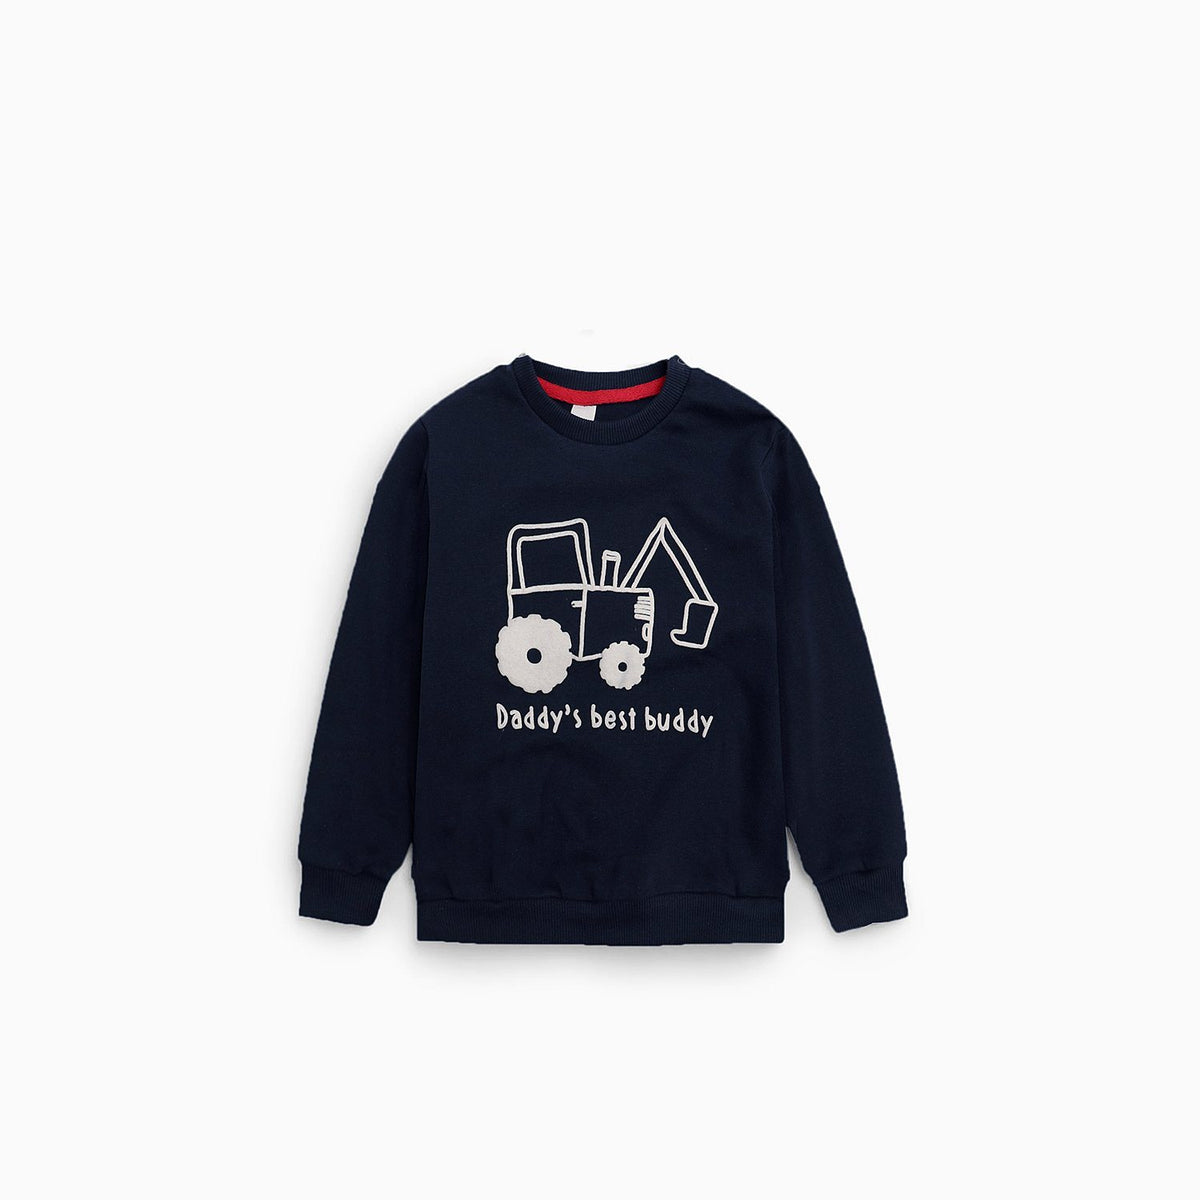 Baby club boys digger printed sweatshirt (1533)